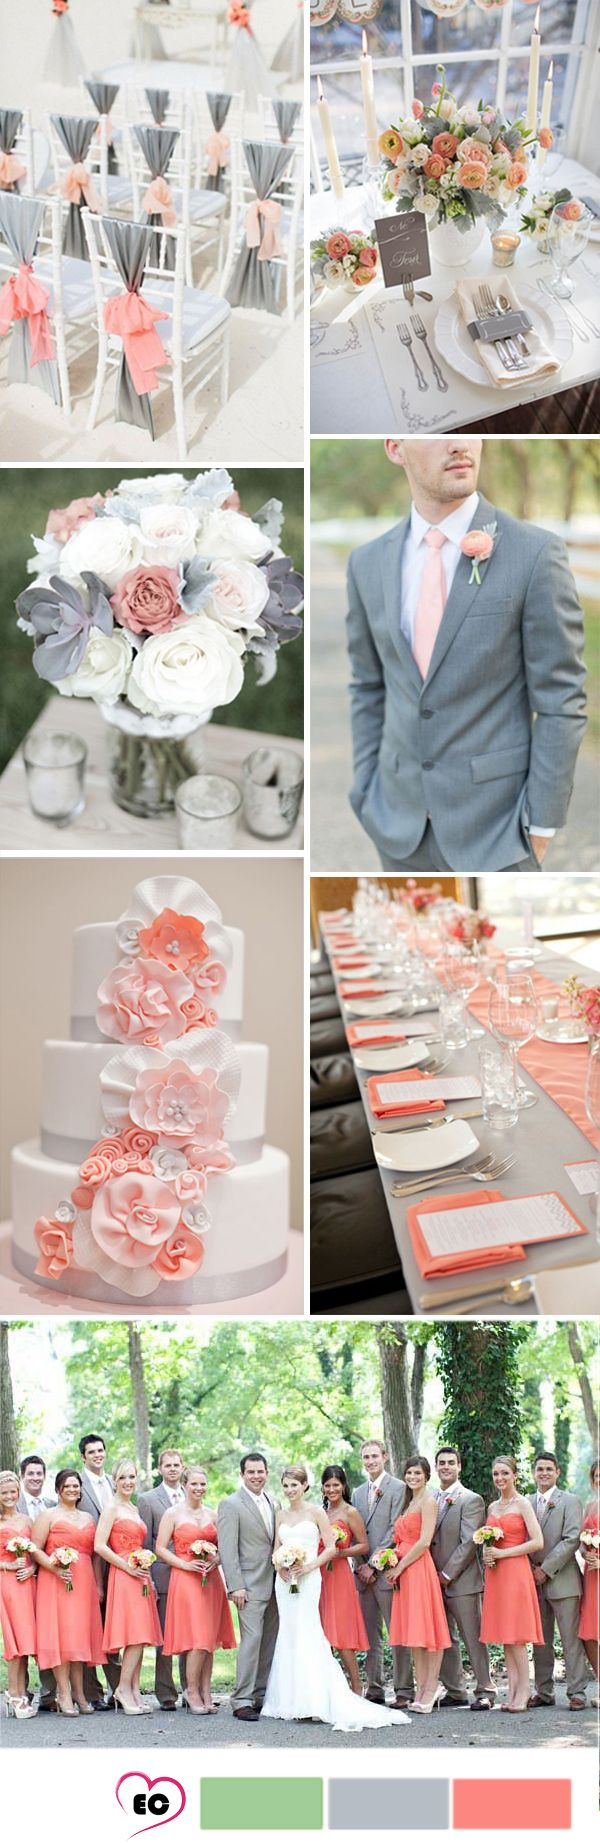 7 Grey Color Palette Wedding Ideas Inspirations Ecinvites